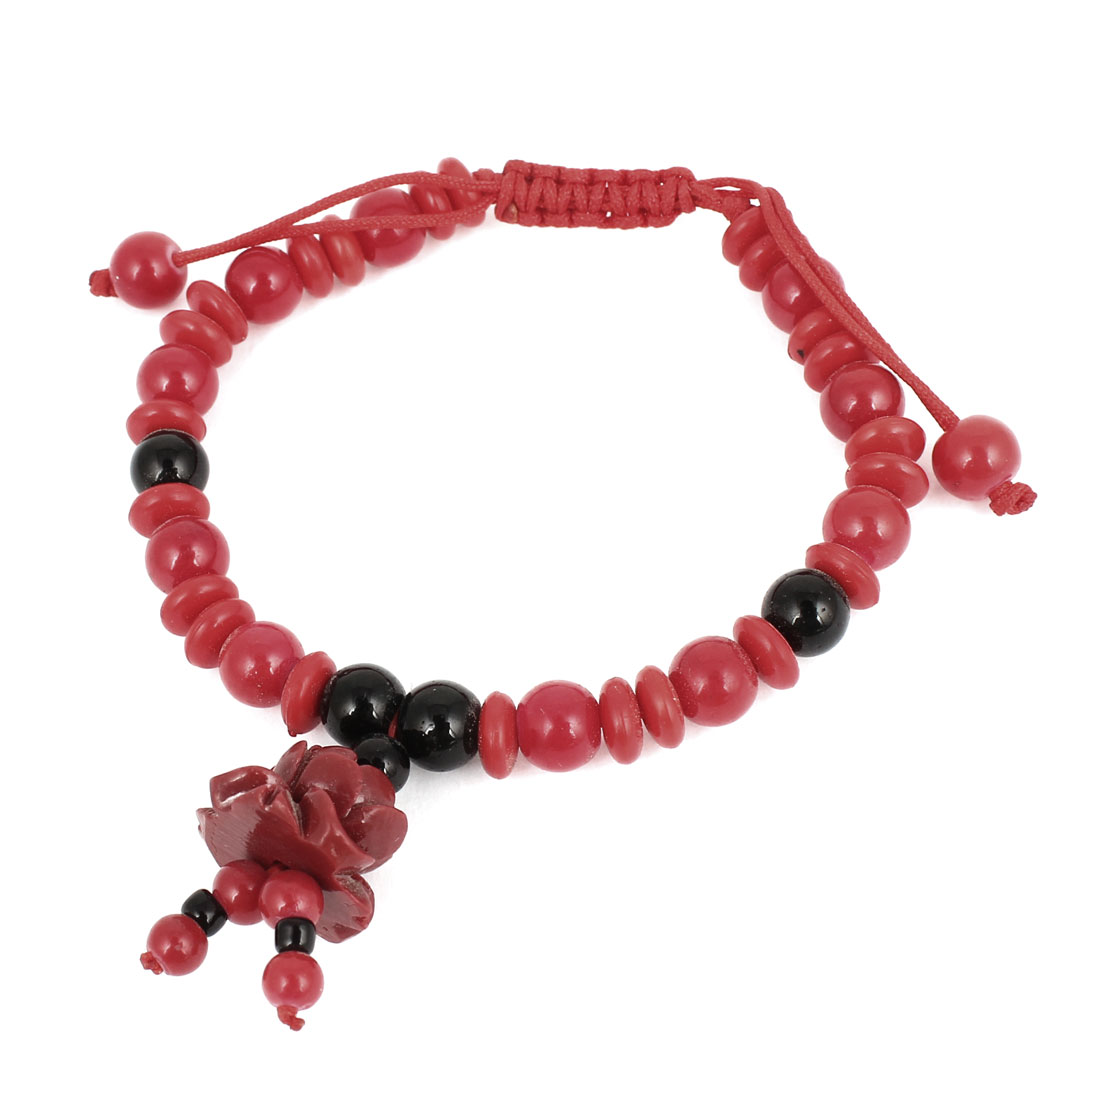 Carved Lotus Flower Decor Beads Chain Draw String Bracelet Bangle Black Red